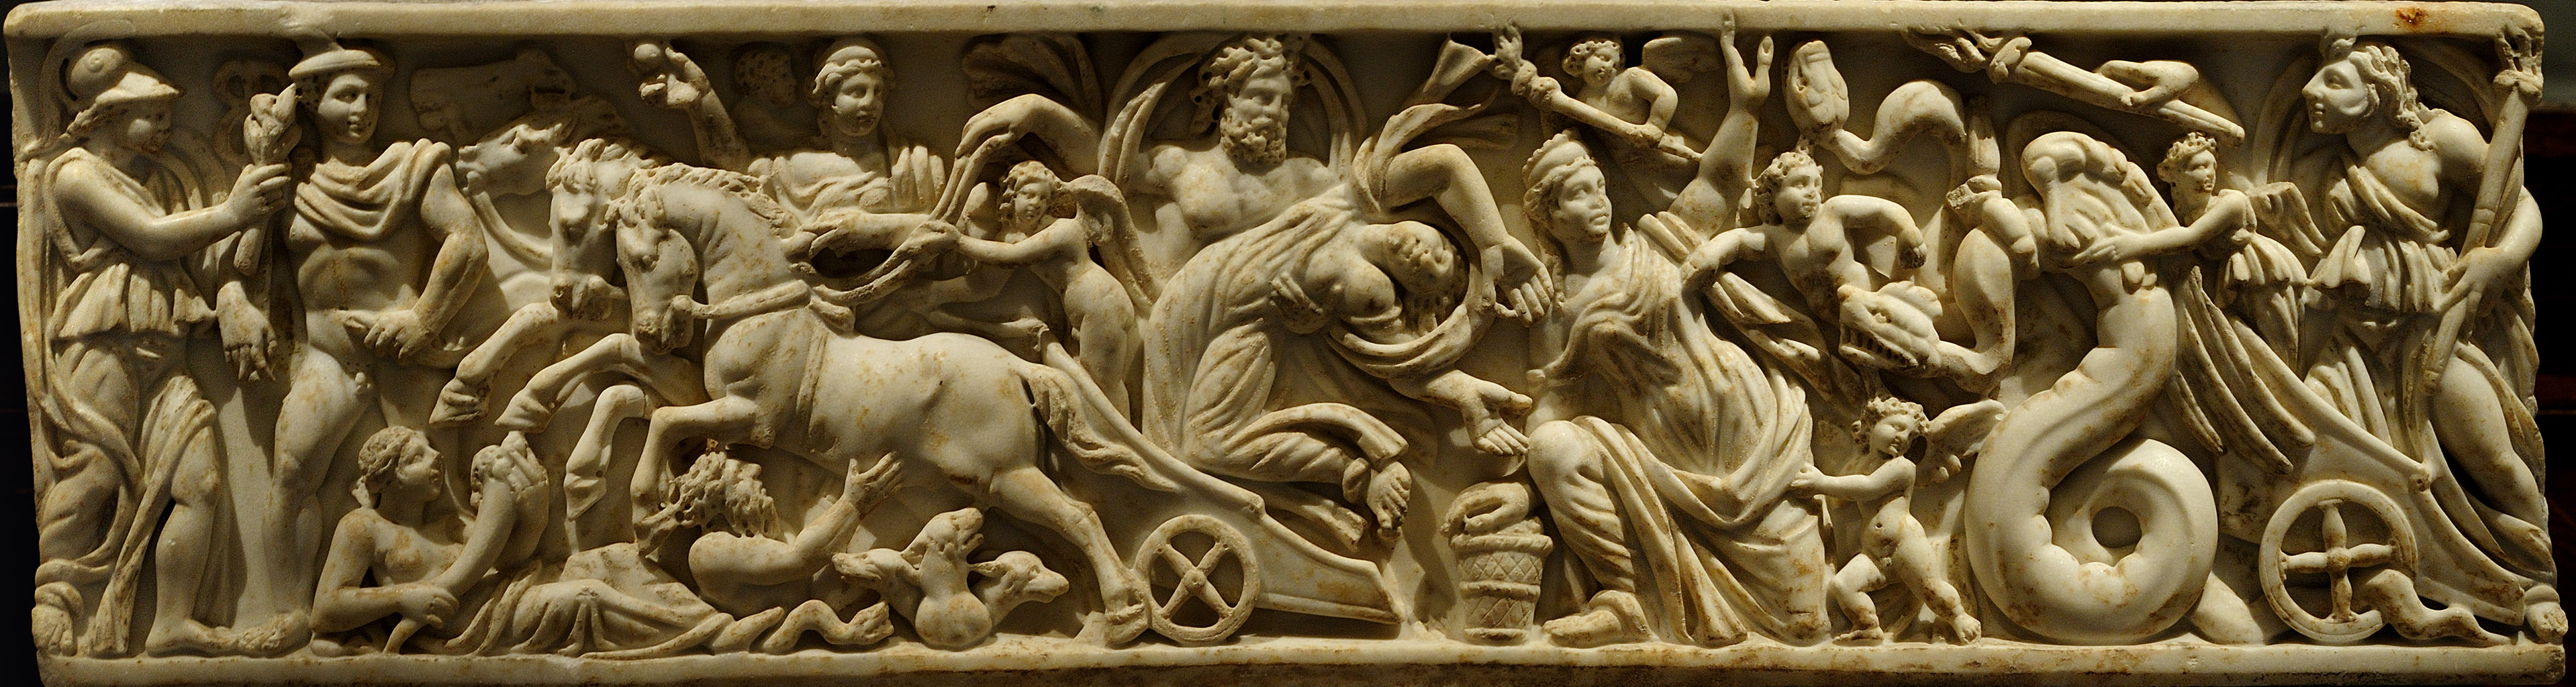 Front panel of a sarcophagus with a scene of abduction of Persephone by Hades. Marble. Beginning of the 3-в cent. CE. Inv. No. I 1126. Vienna, Museum of Art History